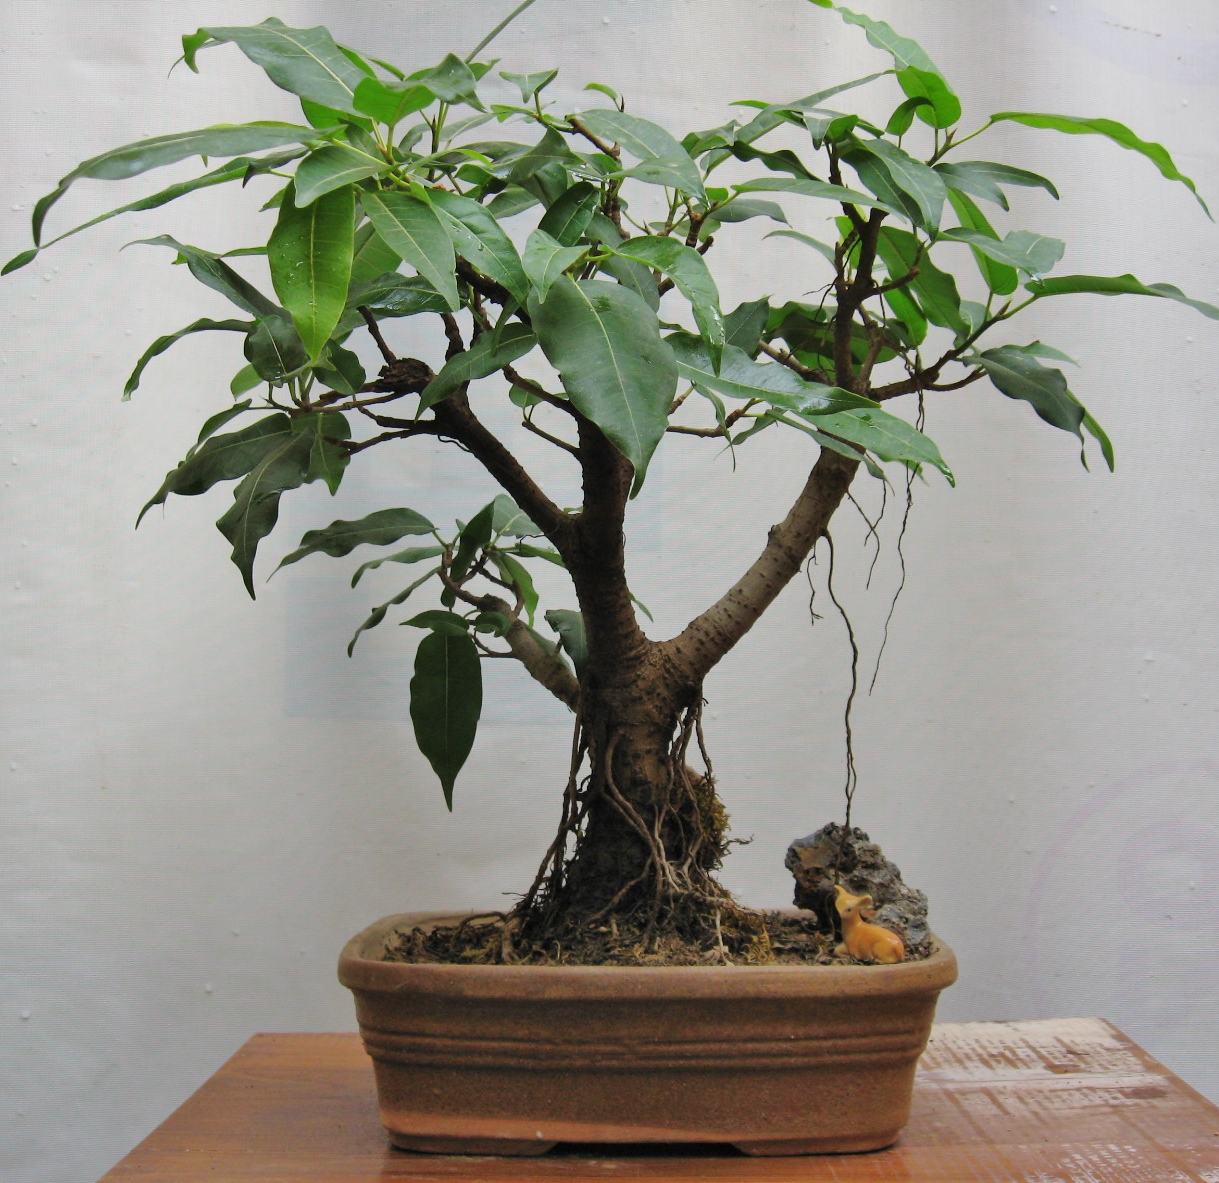 Ficus Virens Or Pilkhan BONSAIS PLANTS AS GIFTS LANDSCAPING